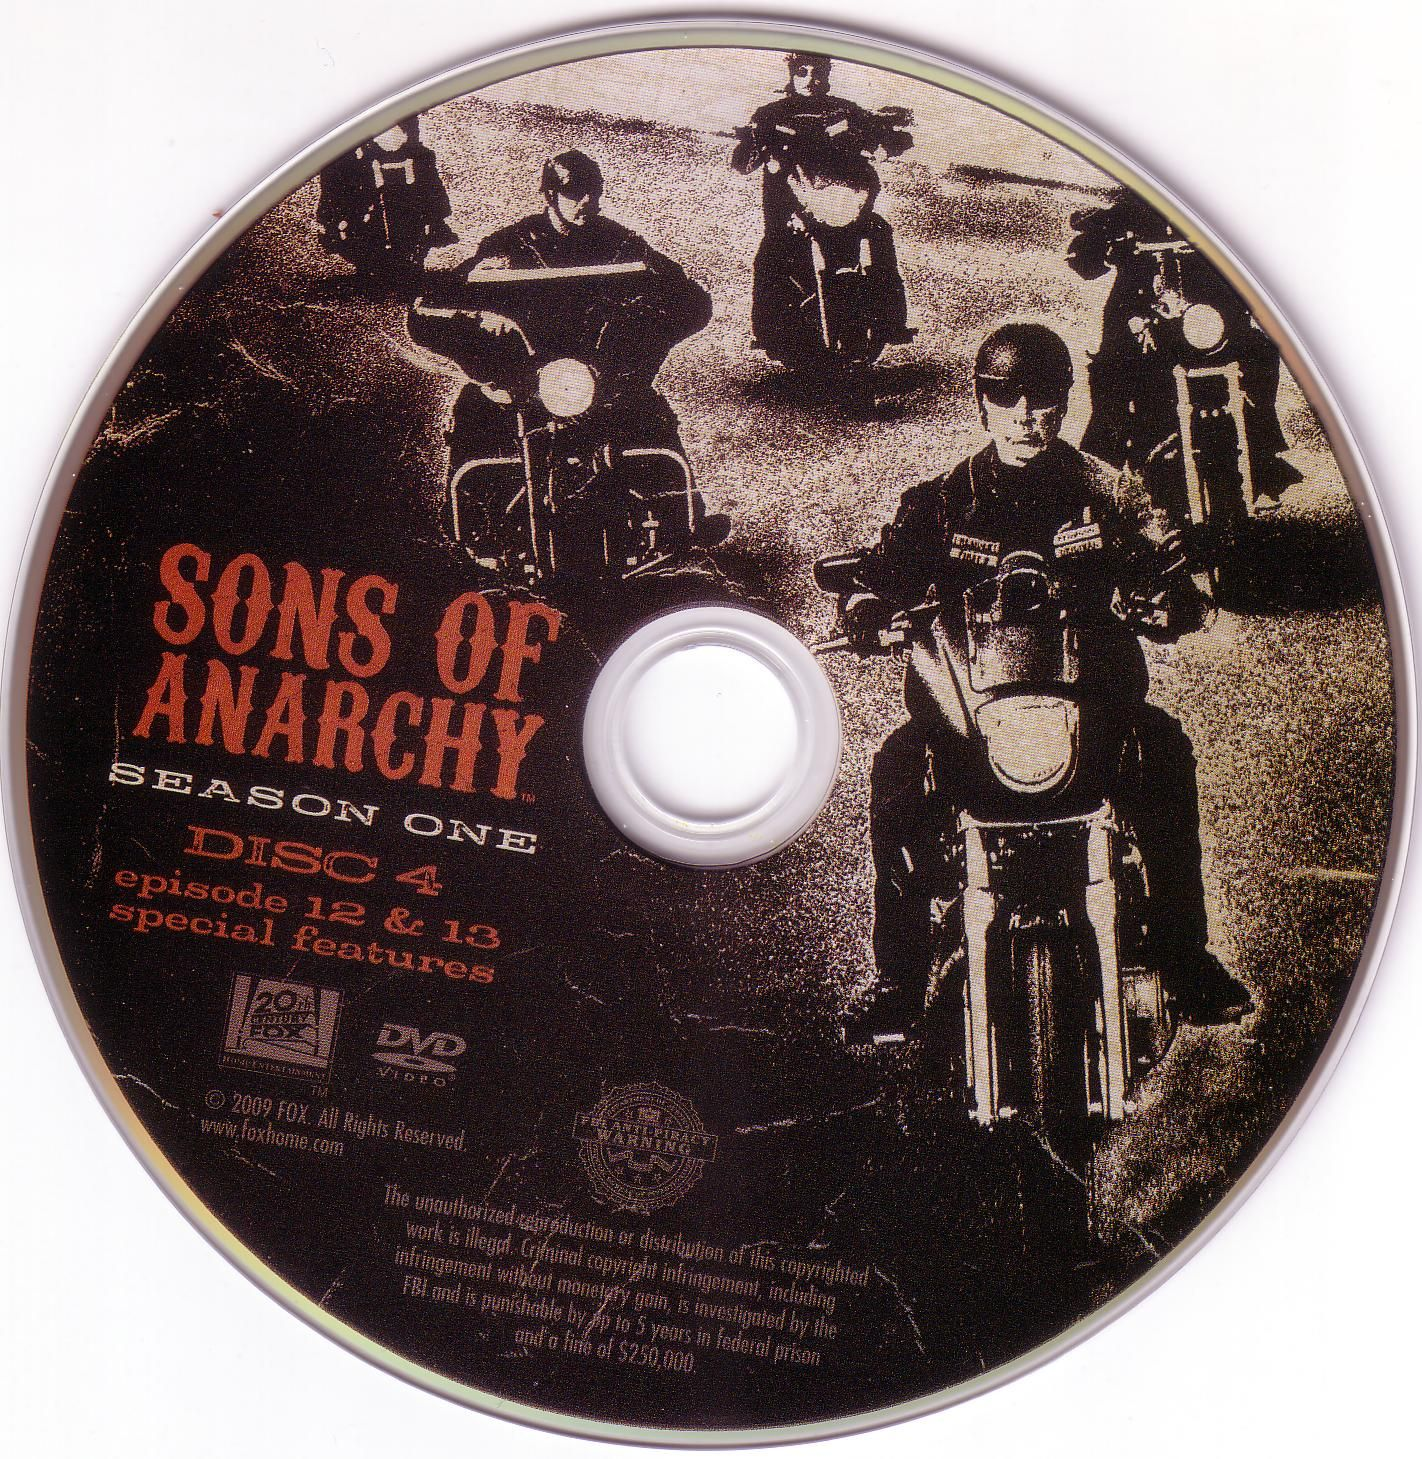 Season 1 Disc 4 Episodes 12 13 Anarchy Sons Of Anarchy Disc